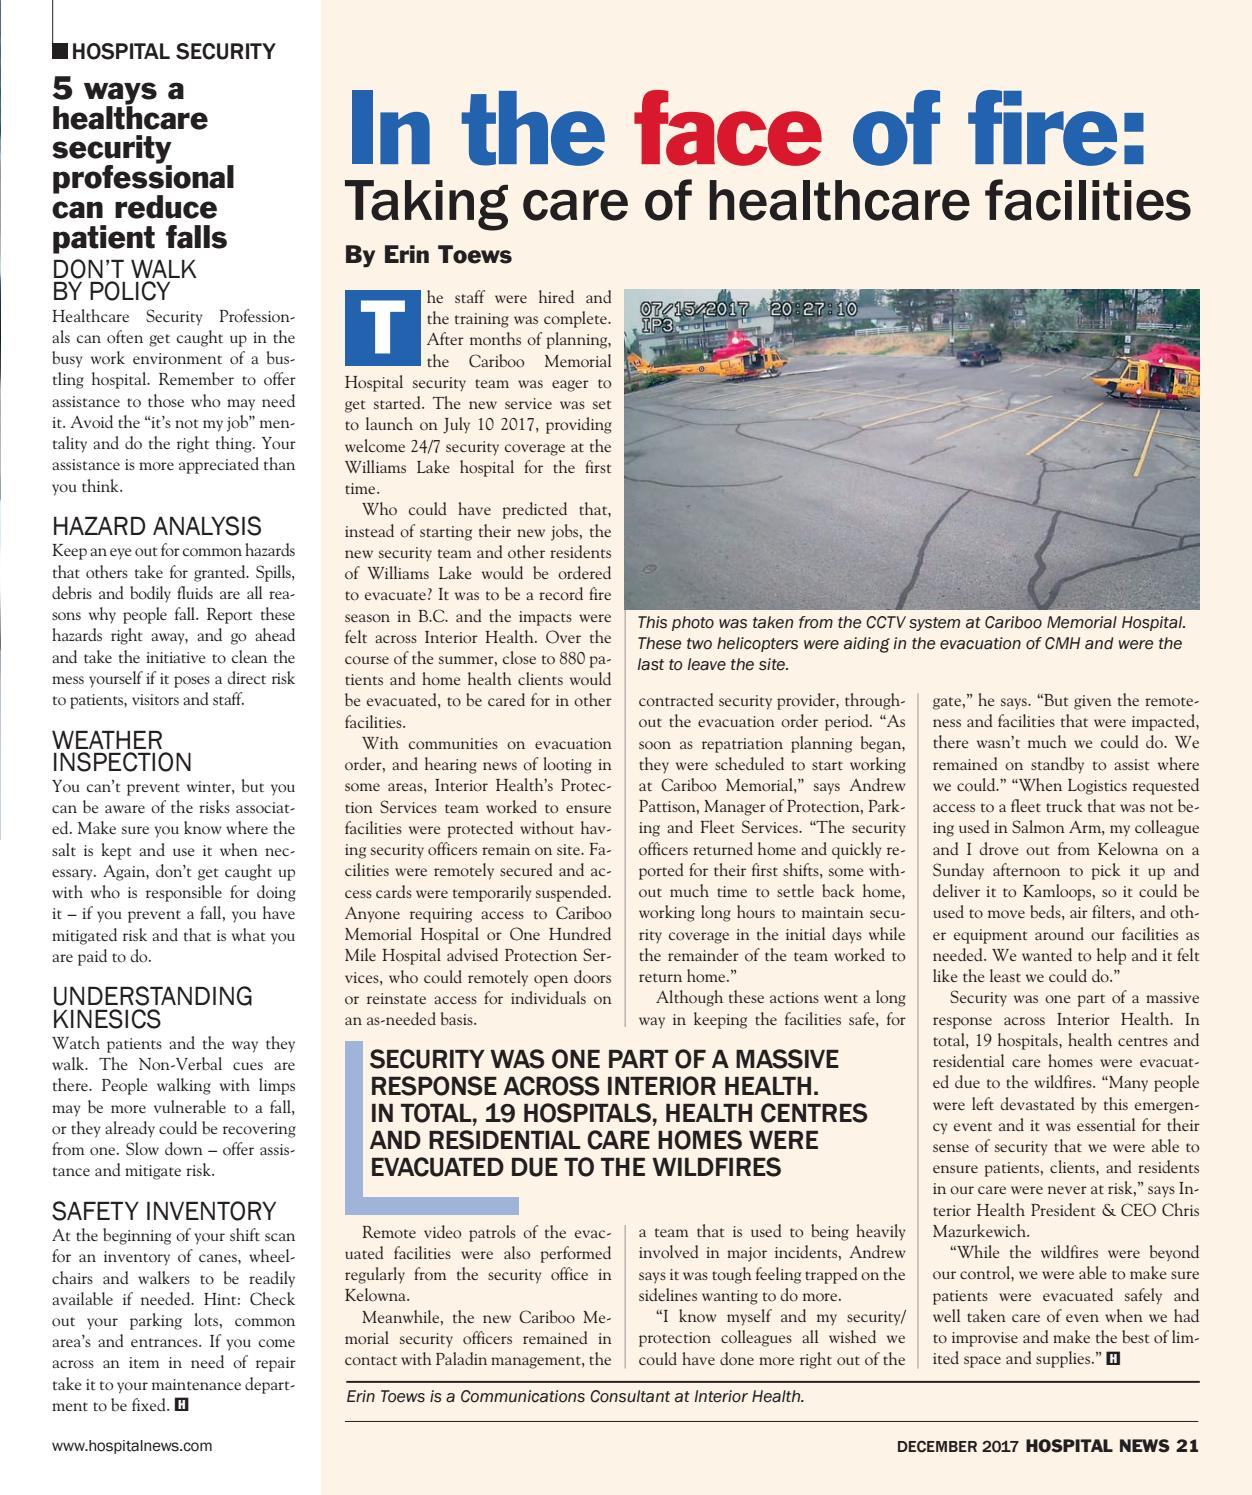 e0163fdb92d Hospital News 2017 December Edition by Hospital News - issuu